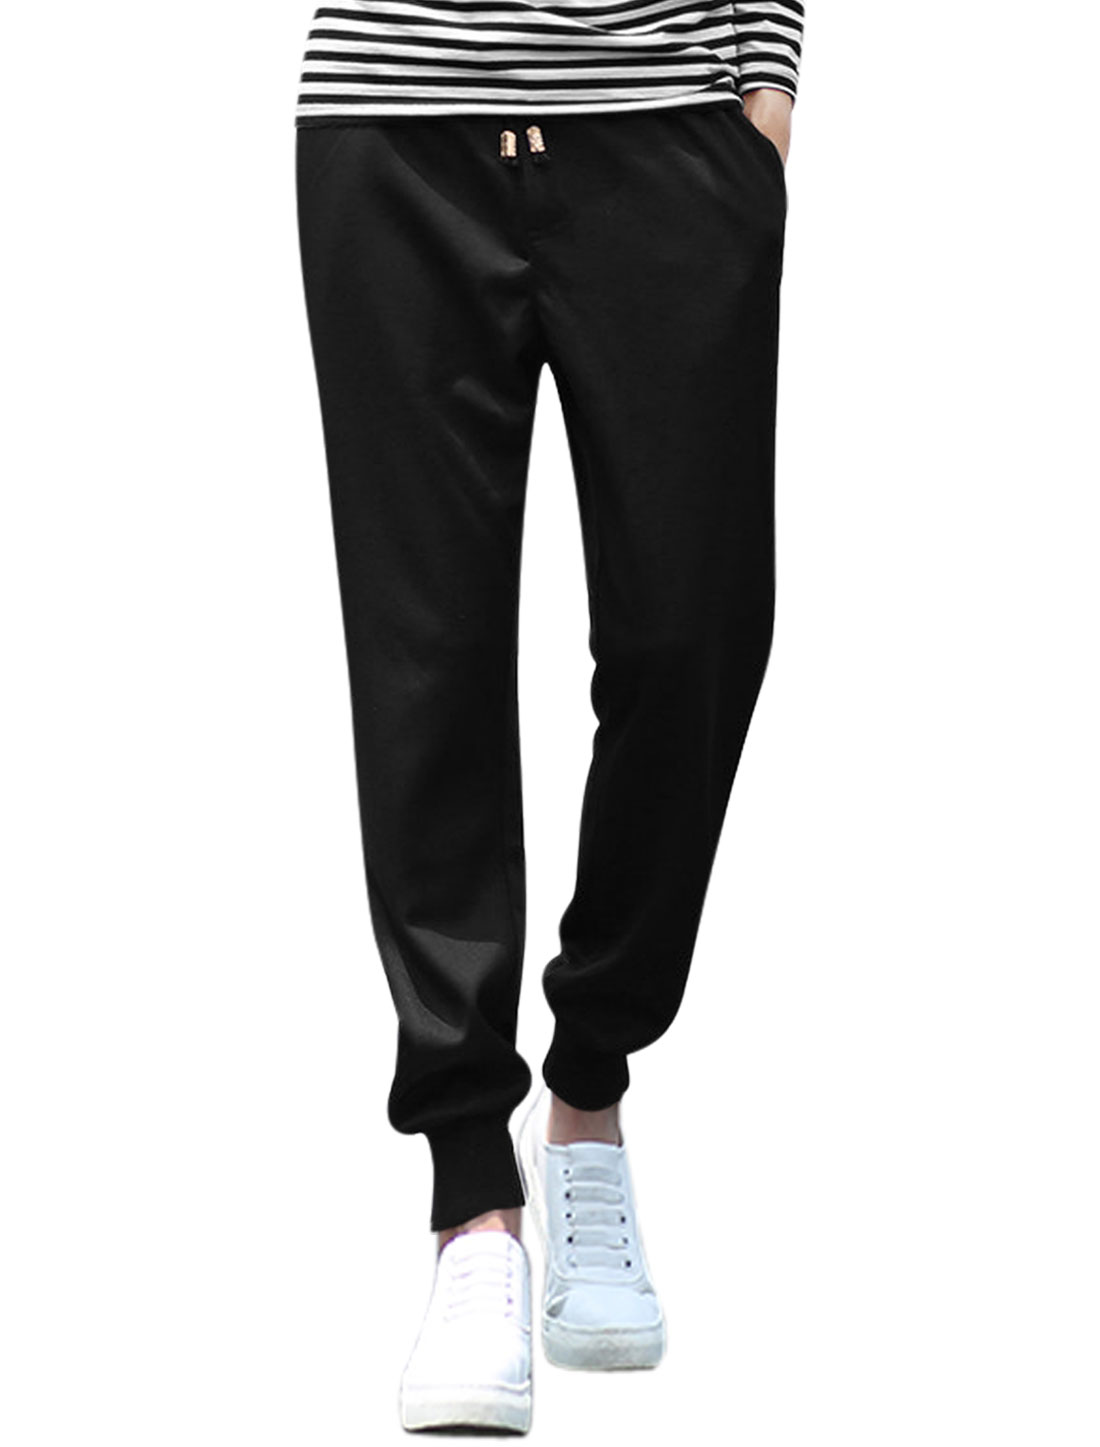 Men Natural Waist Zip Fly Ribbed Cuffs Tapered Pants Black W30